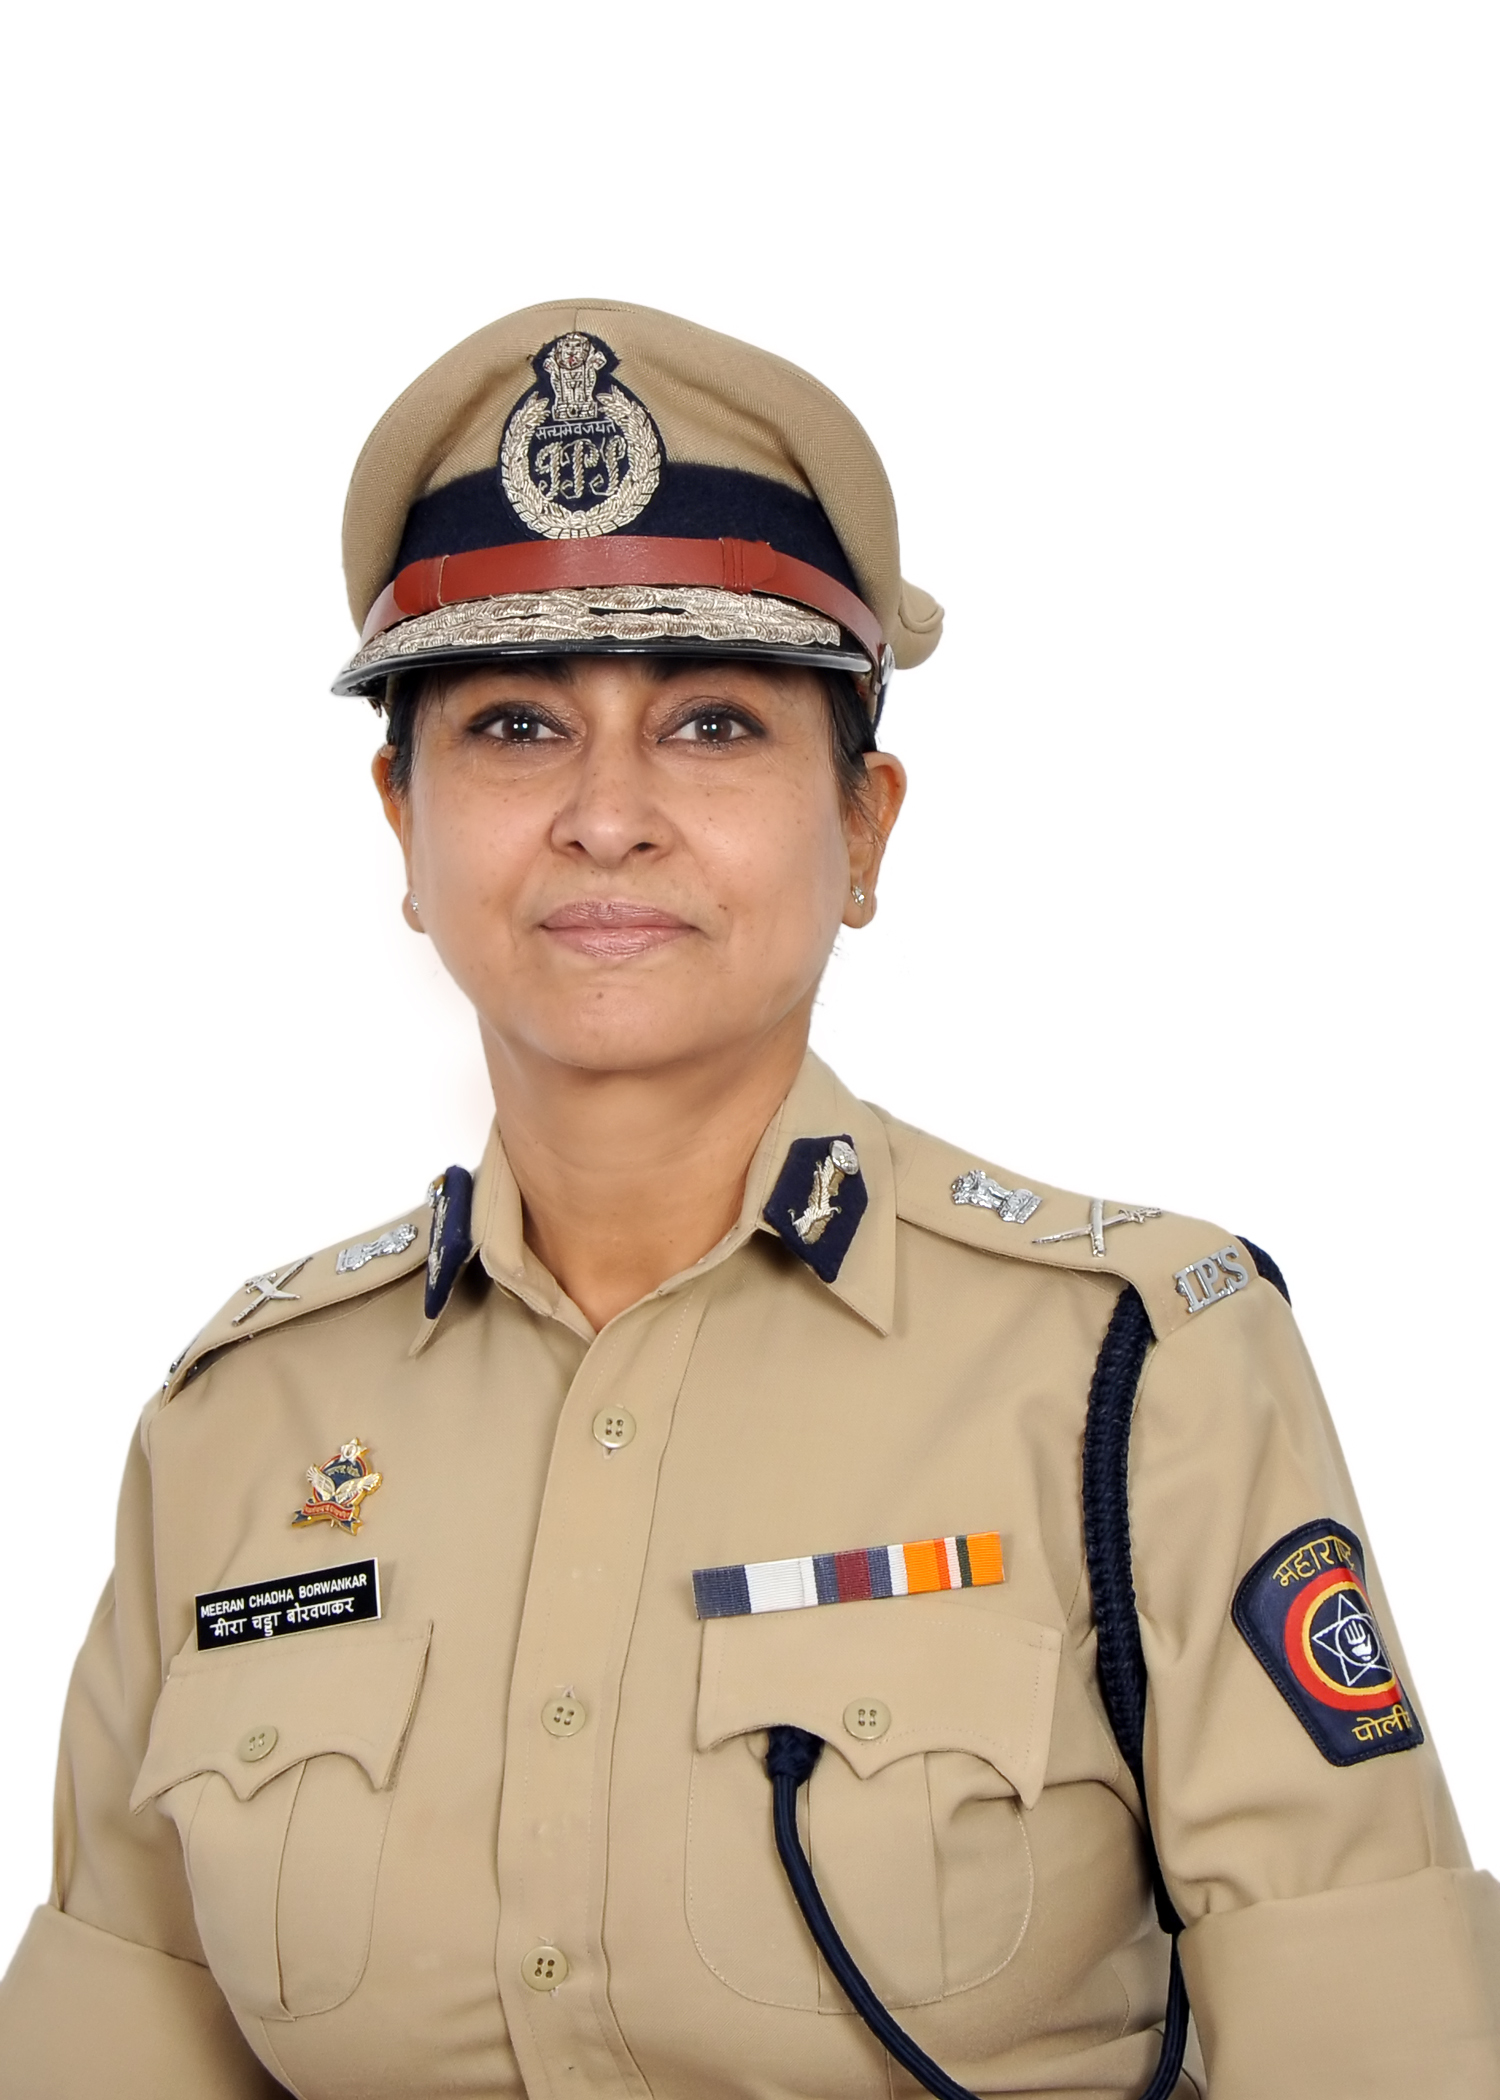 Meeran Borwankar, Indian Police Service (IPS) Officer in uniform